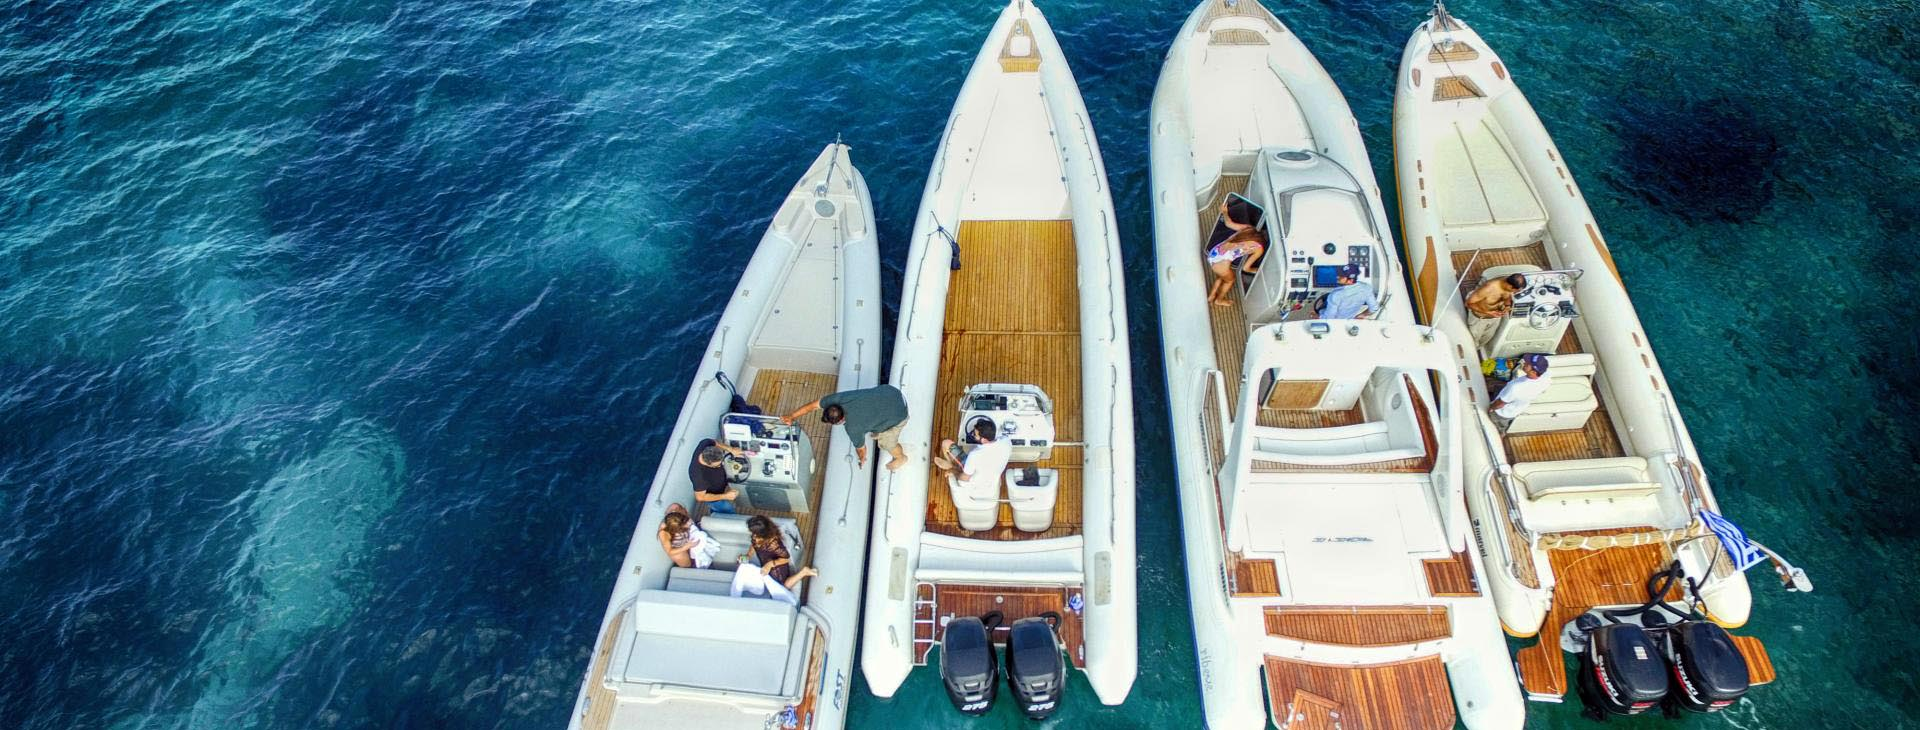 Also check our private one-day cruises from Mykonos or Paros